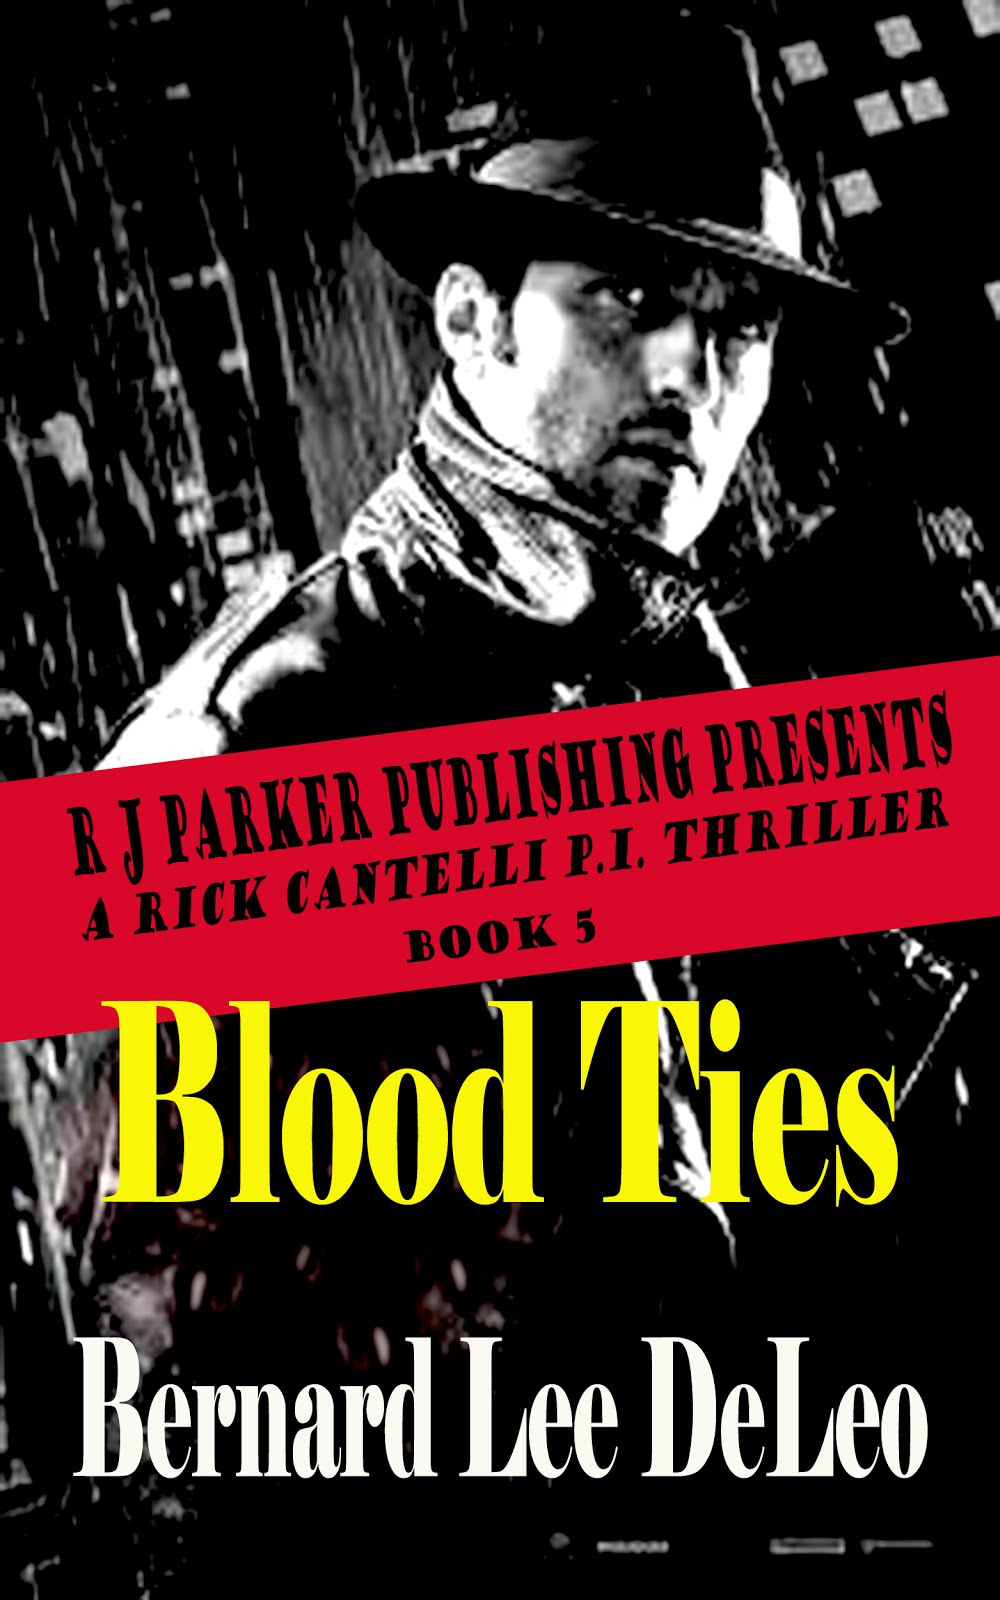 Rick Cantelli, P.I. Book 5: Blood Ties